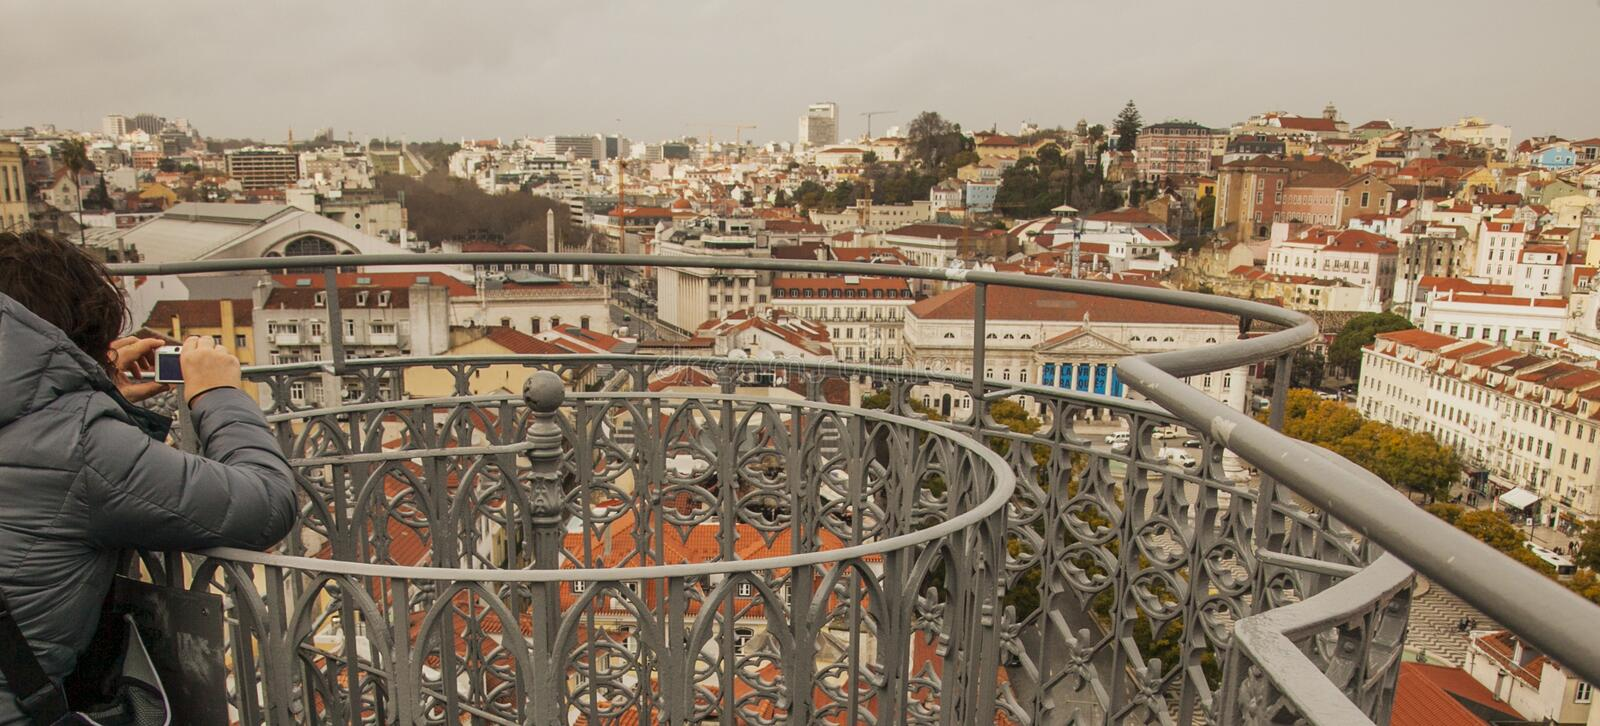 Lisbon, Portugal - at the top of the Santa Justa Lift. This image shows a view of Lisbon, Portugal. We can see a person taking pictures at the top of the Santa stock images